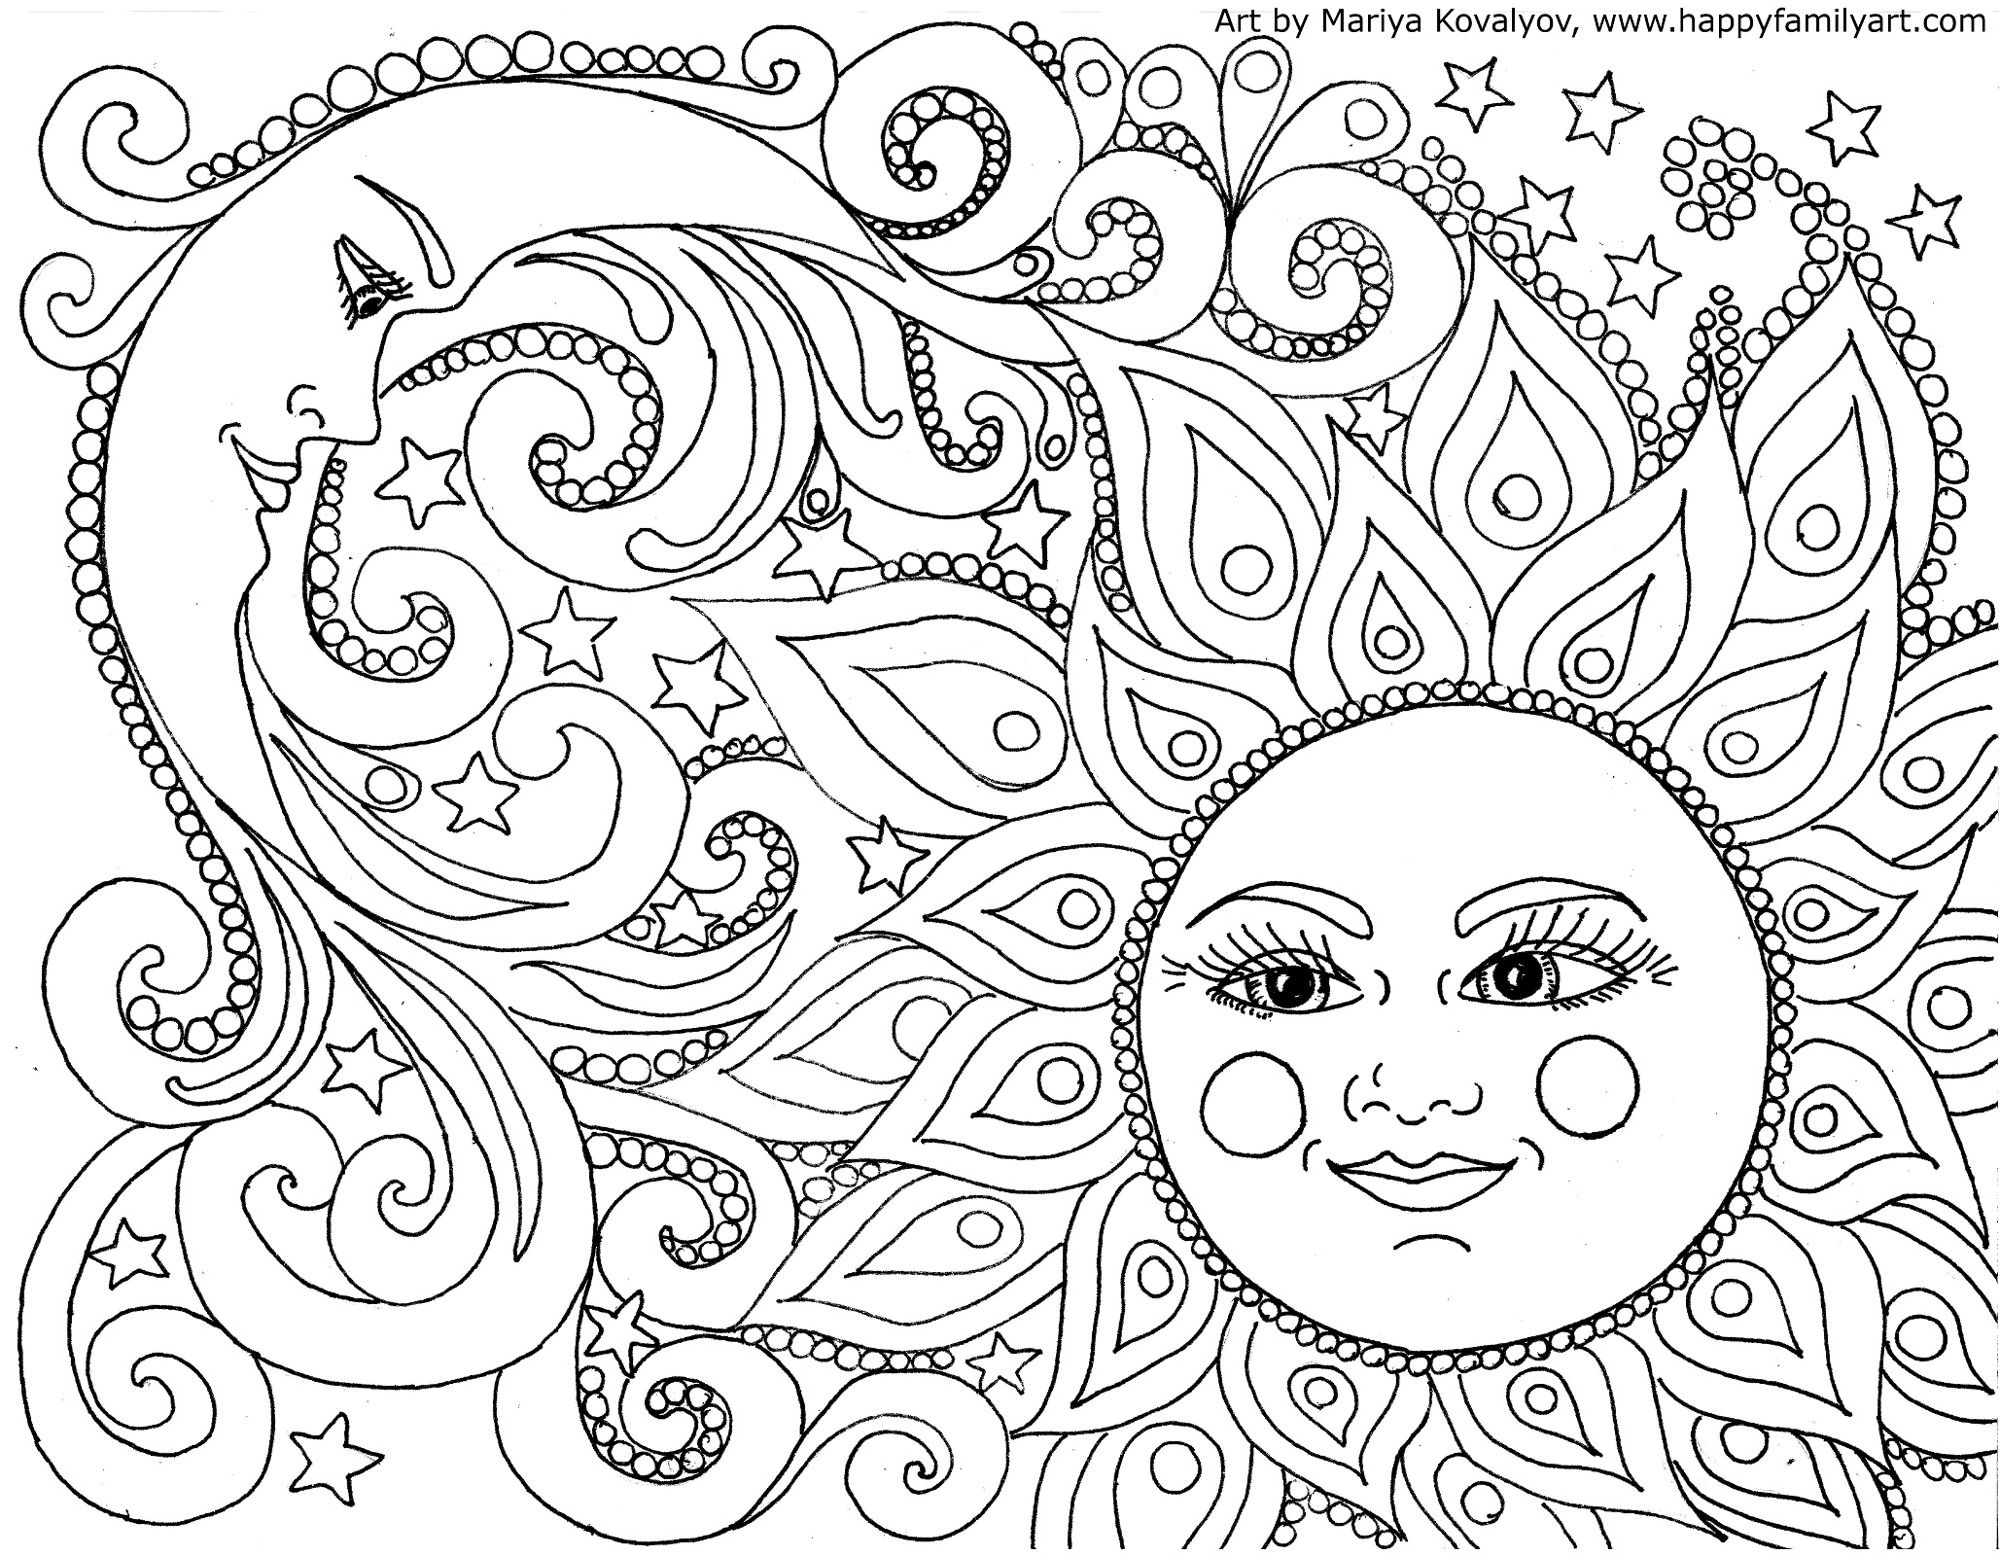 Coloring pages for adults for free - Adult Coloring Pages I Made Many Great Fun And Original Coloring Pages